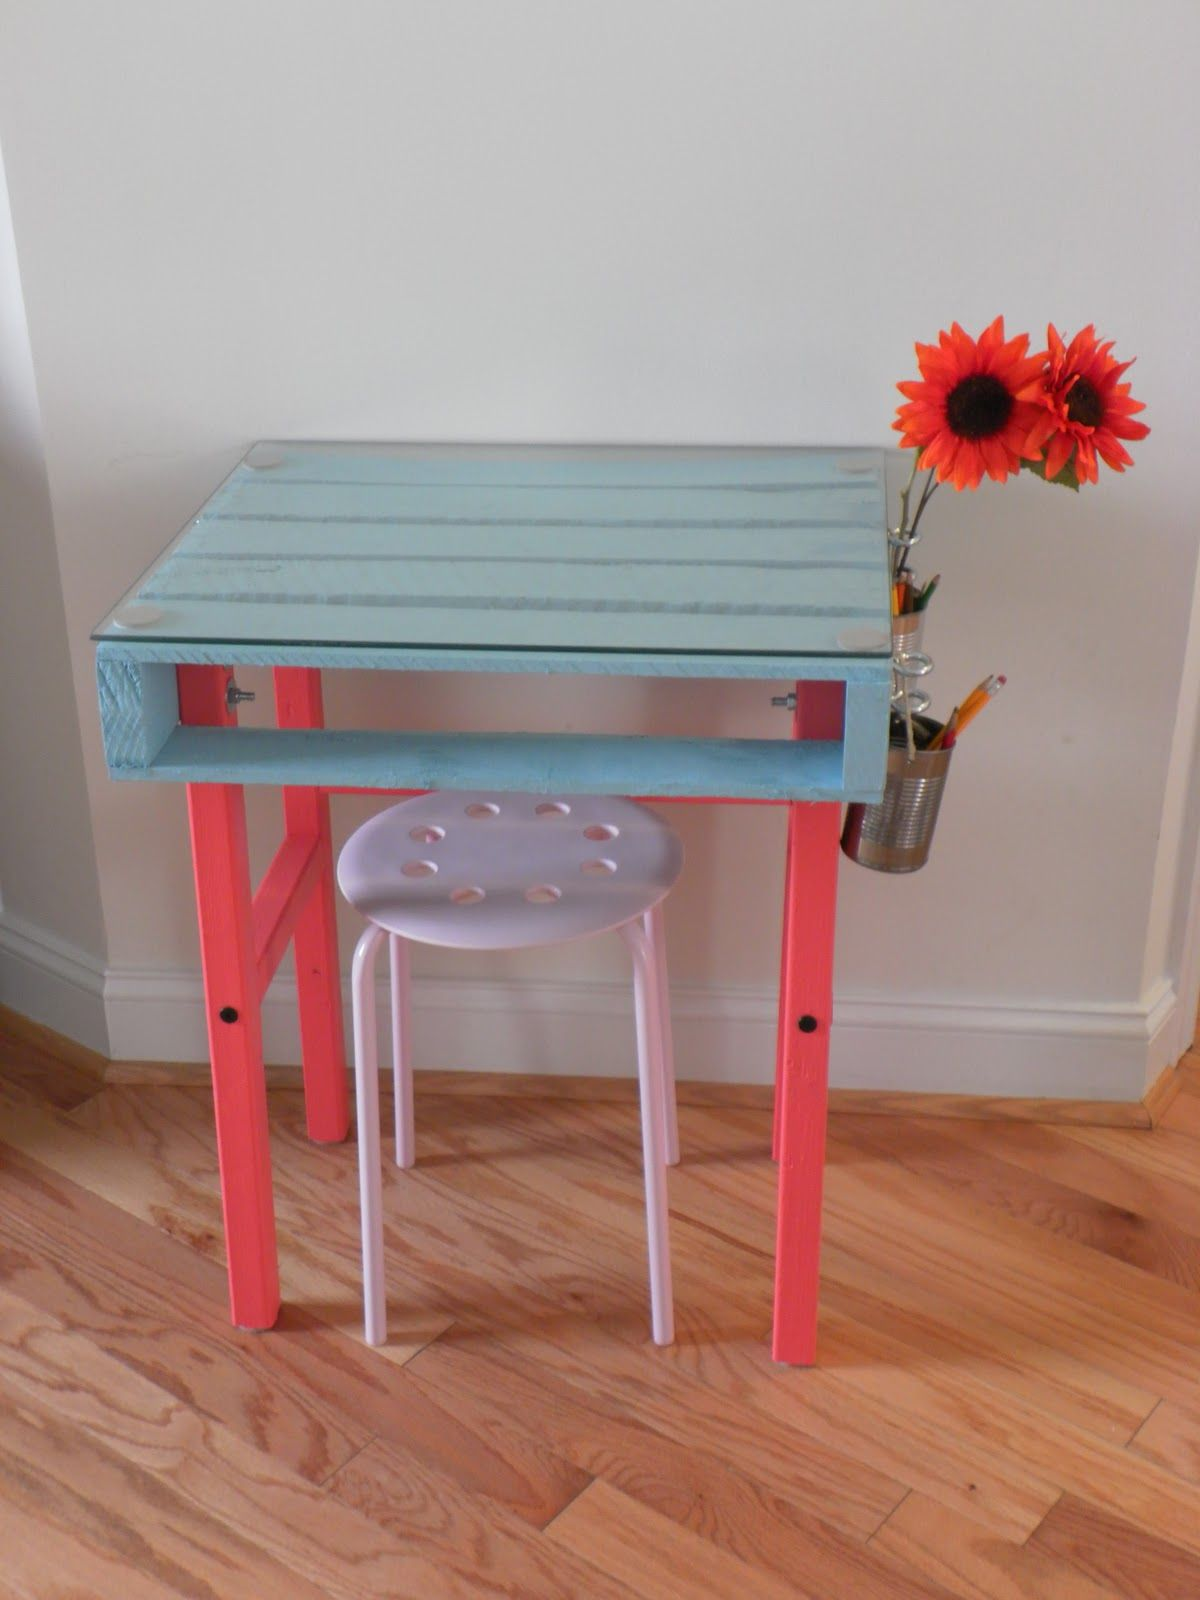 Do you want to make a Pallet Desk ? Enter here and choose your model !